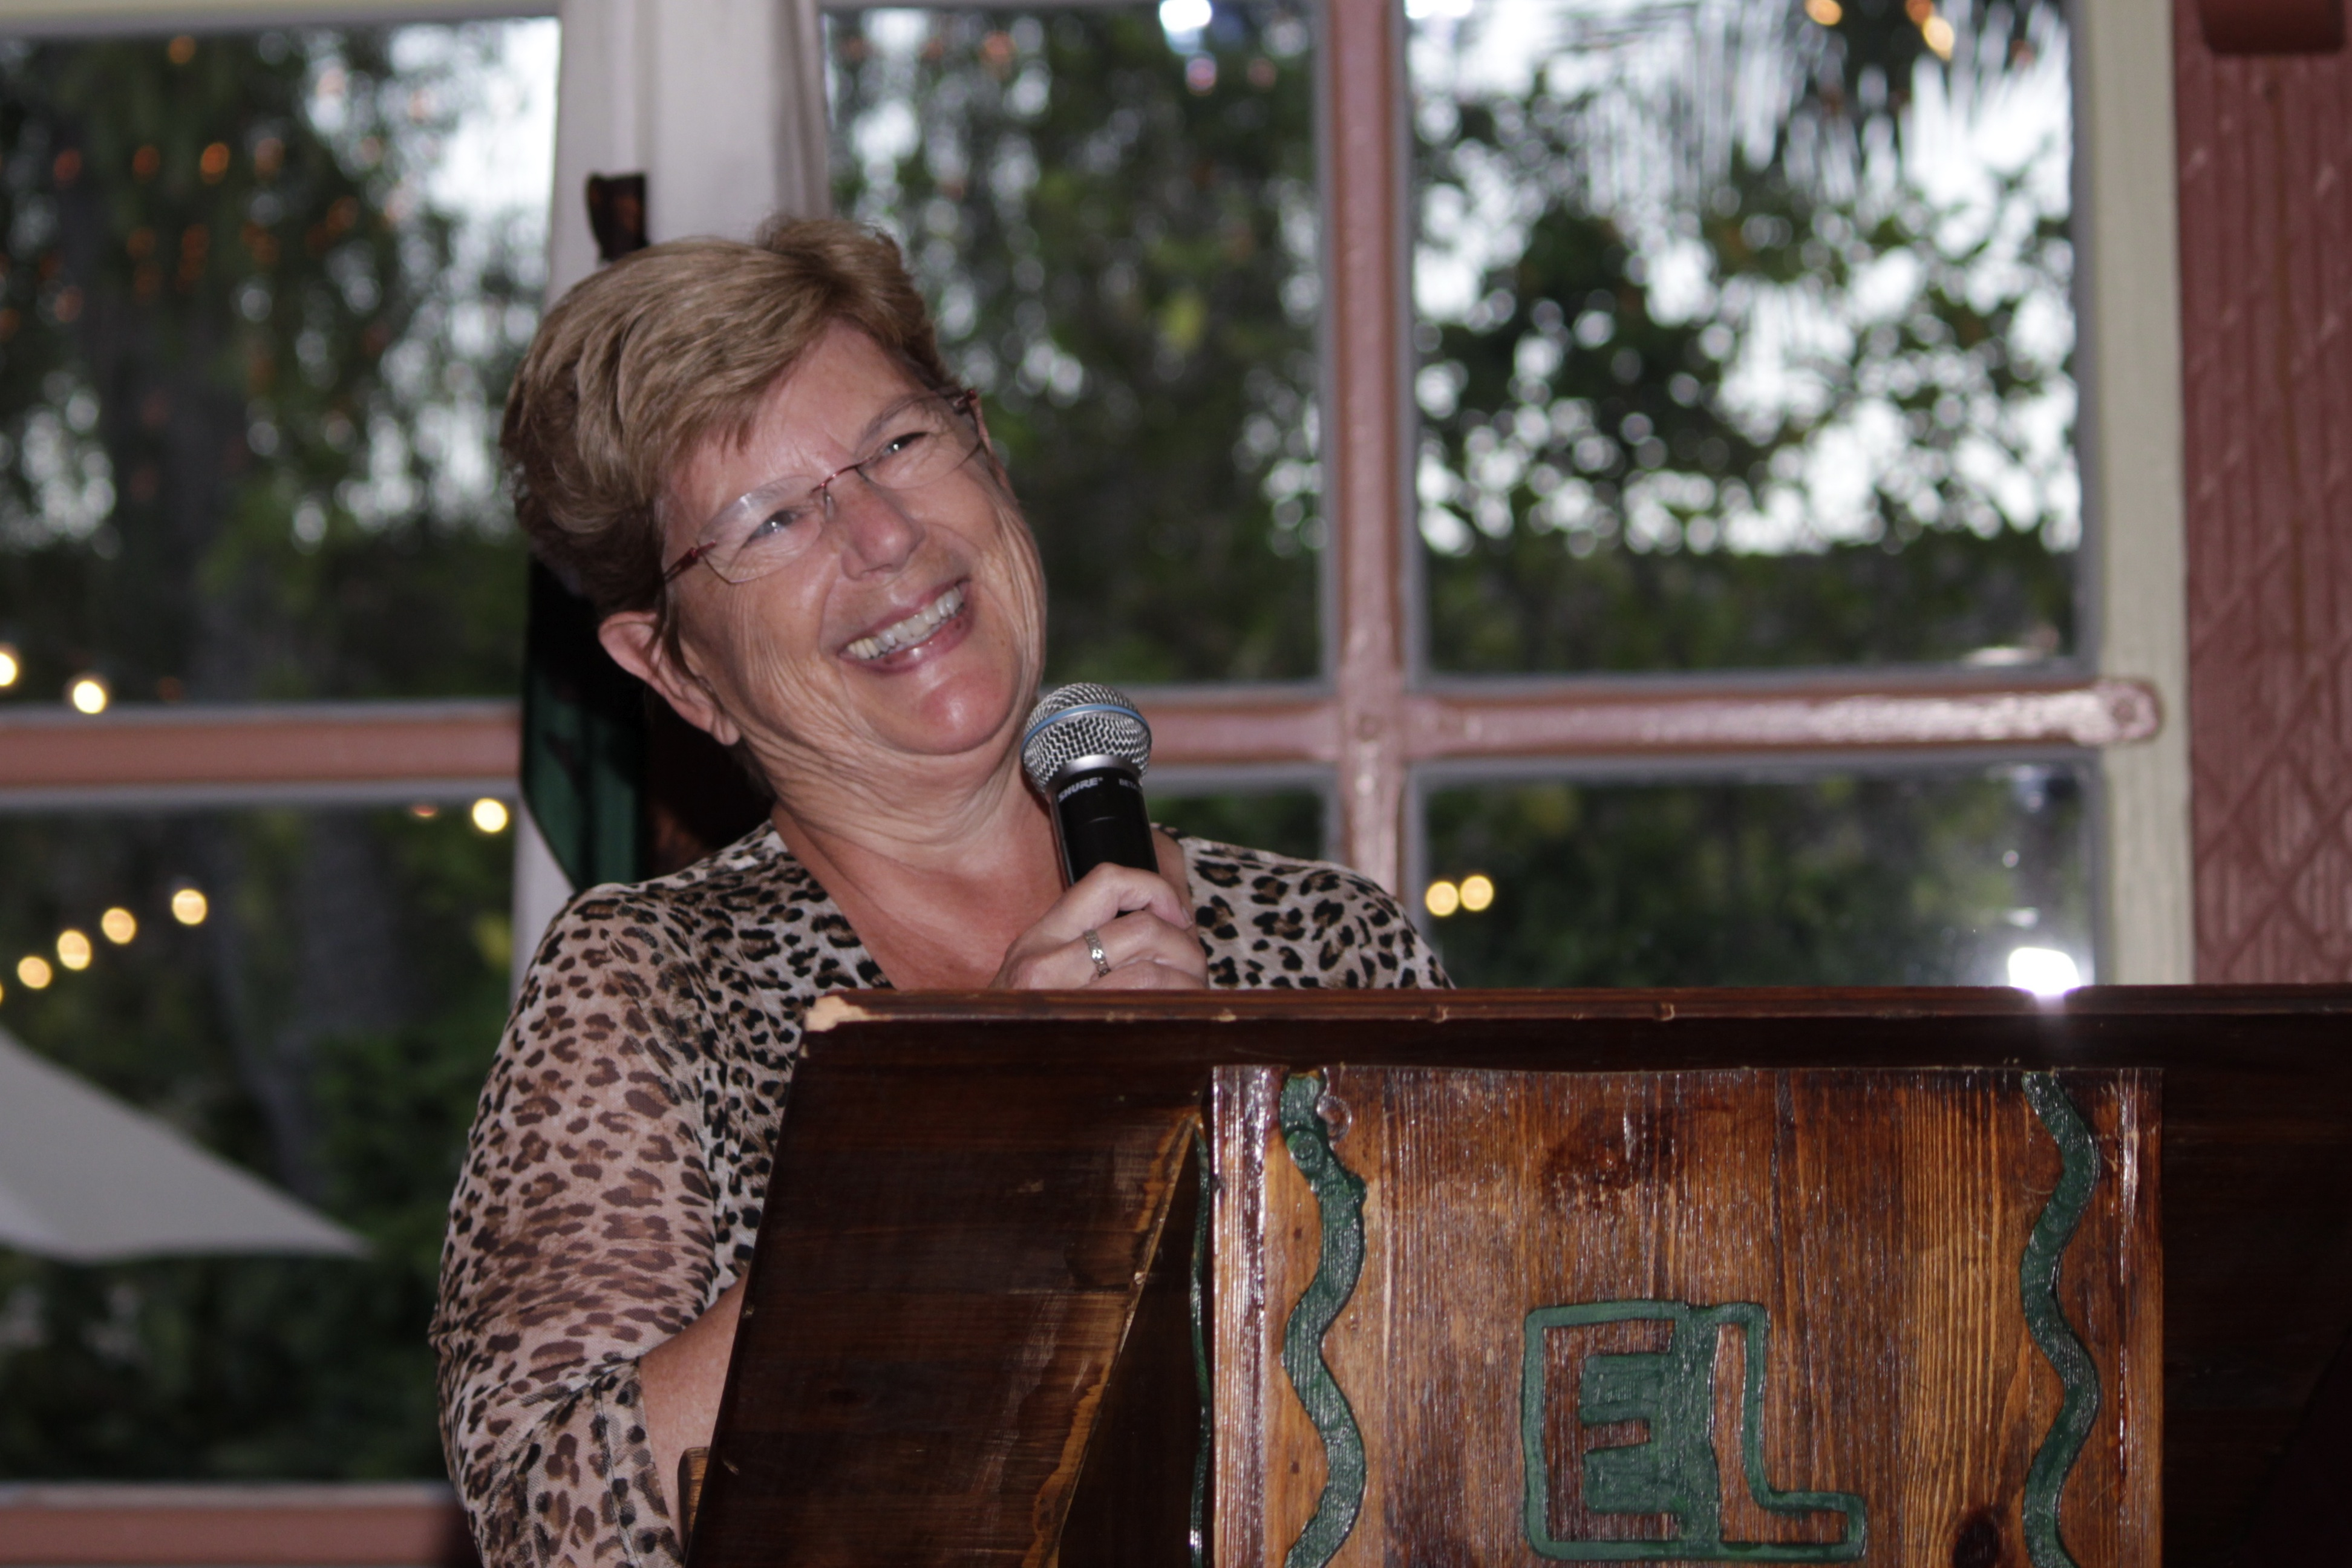 Travel agent and tour manager Ann Ronan was installed as the San Juan Capistrano Chamber of Commerce's board chair for 2014-2015. Photo: Brian Park